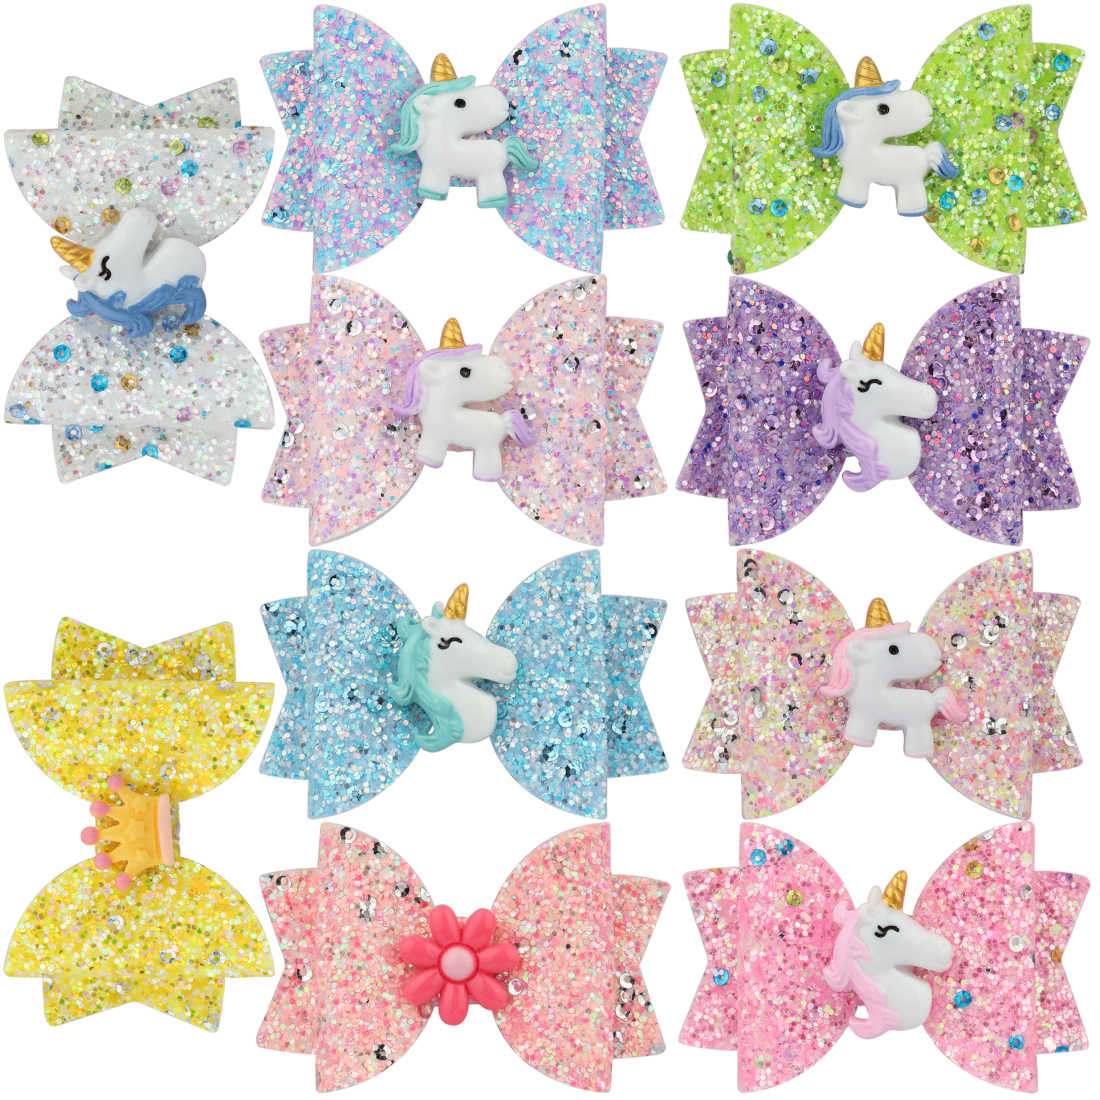 1 PC Girls Glitter Hair Bows Princess Hairpins Kid Barrettes Shiny 3 Inch Unicorn Animal Flamingo Rainbow Children Hair Clips